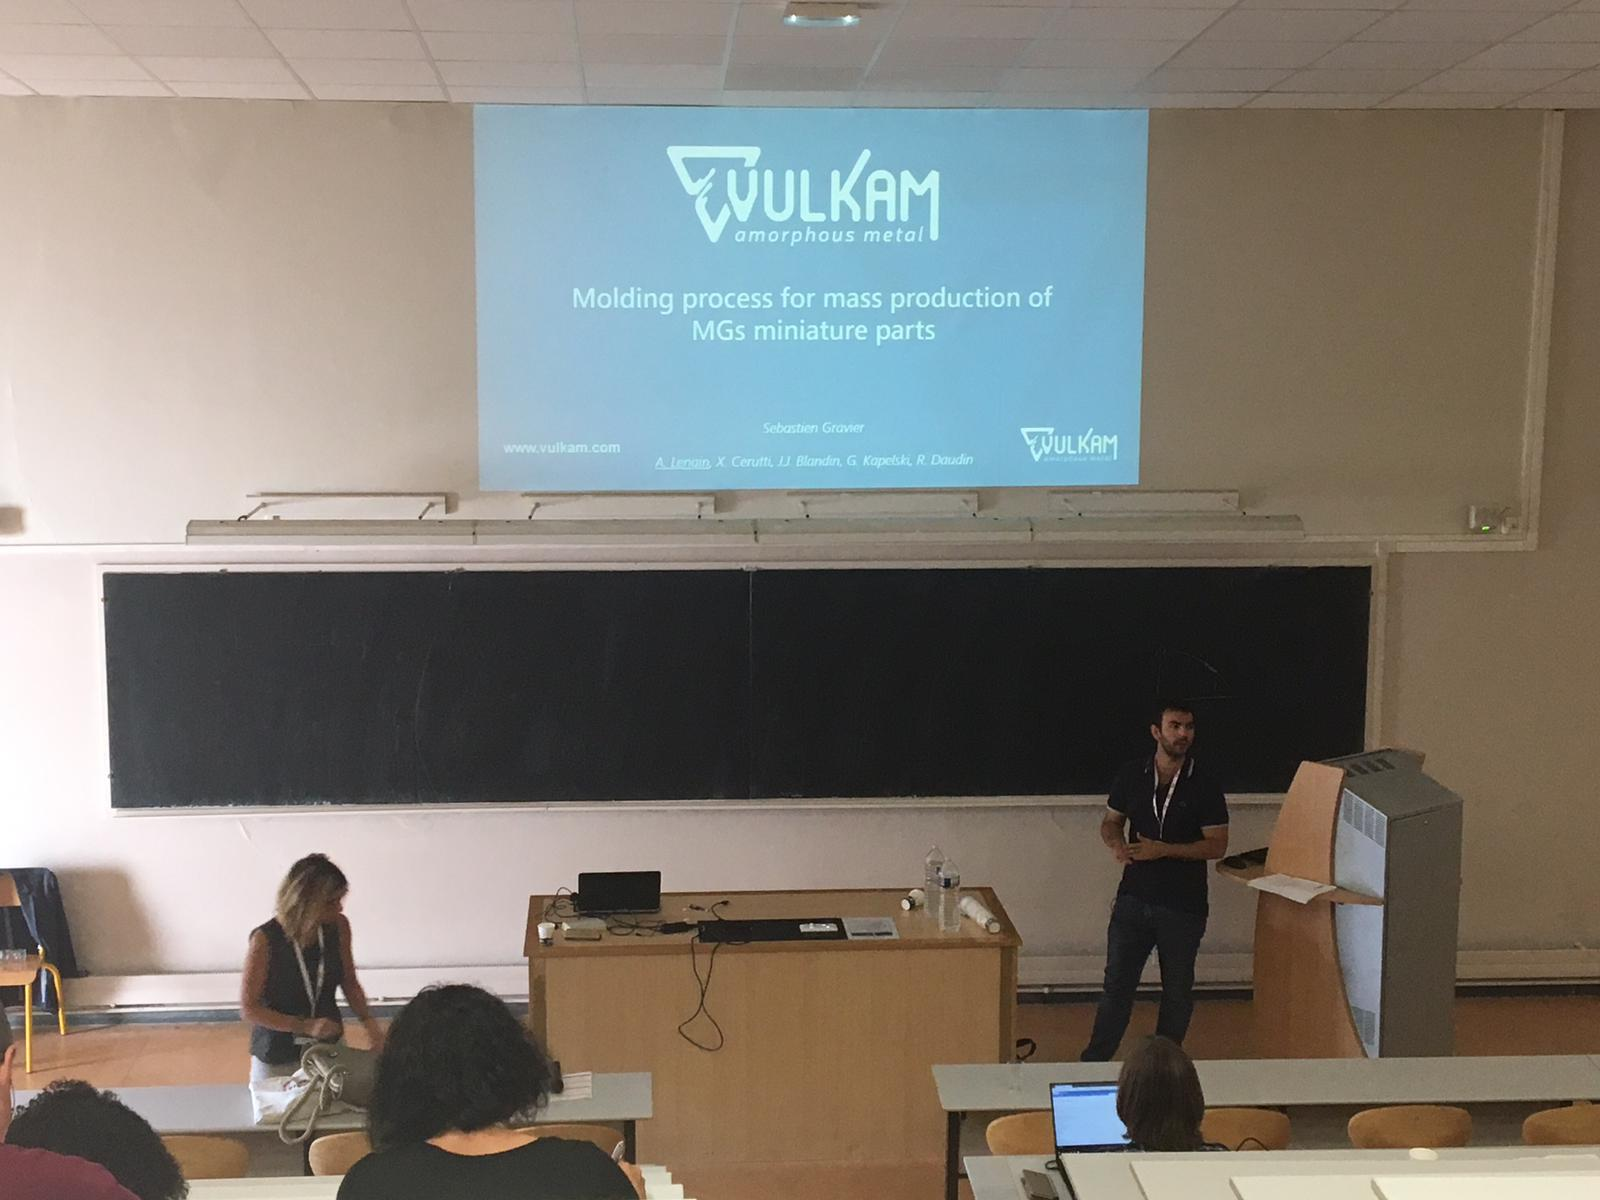 Mr LENAIN of Vulkam, at the Conference on Amorphous Metals (LAM) in 2019